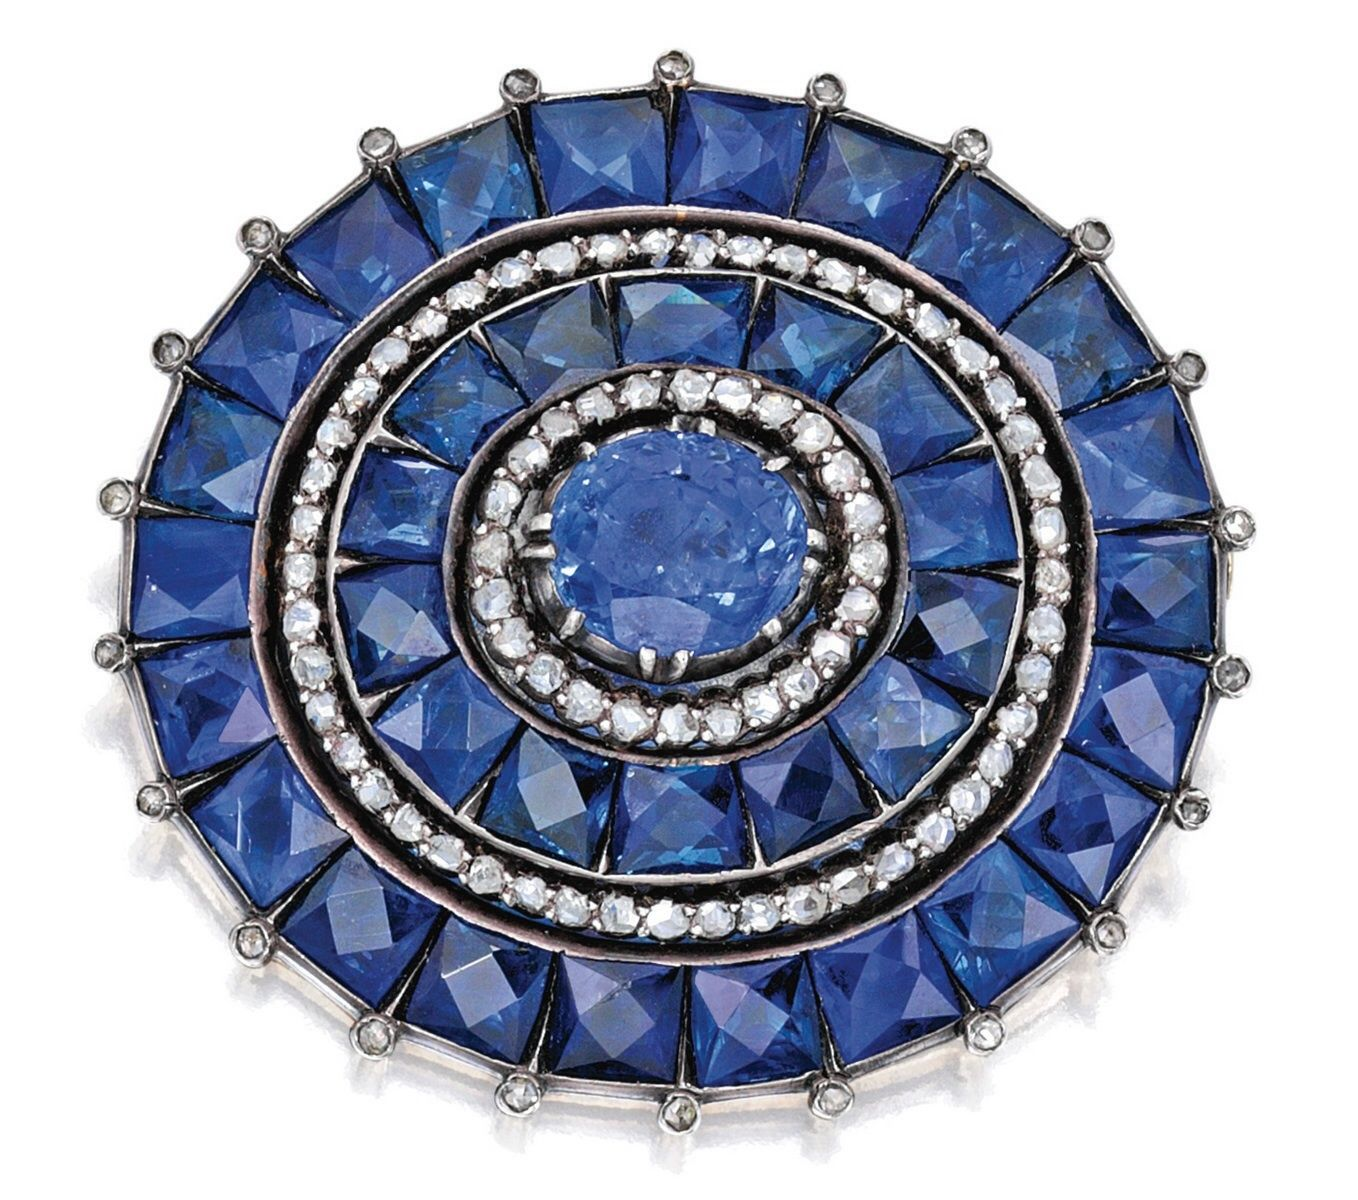 GOLD, SILVER, SAPPHIRE AND DIAMOND BROOCH - Centered by an oval-shaped sapphire weighing approximately 6.25 carats, framed by 36 French-cut sapphires weighing approximately 17.75 carats, accented by rose-cut diamonds weighing approximately .65 carat; last quarter of the 19th century.